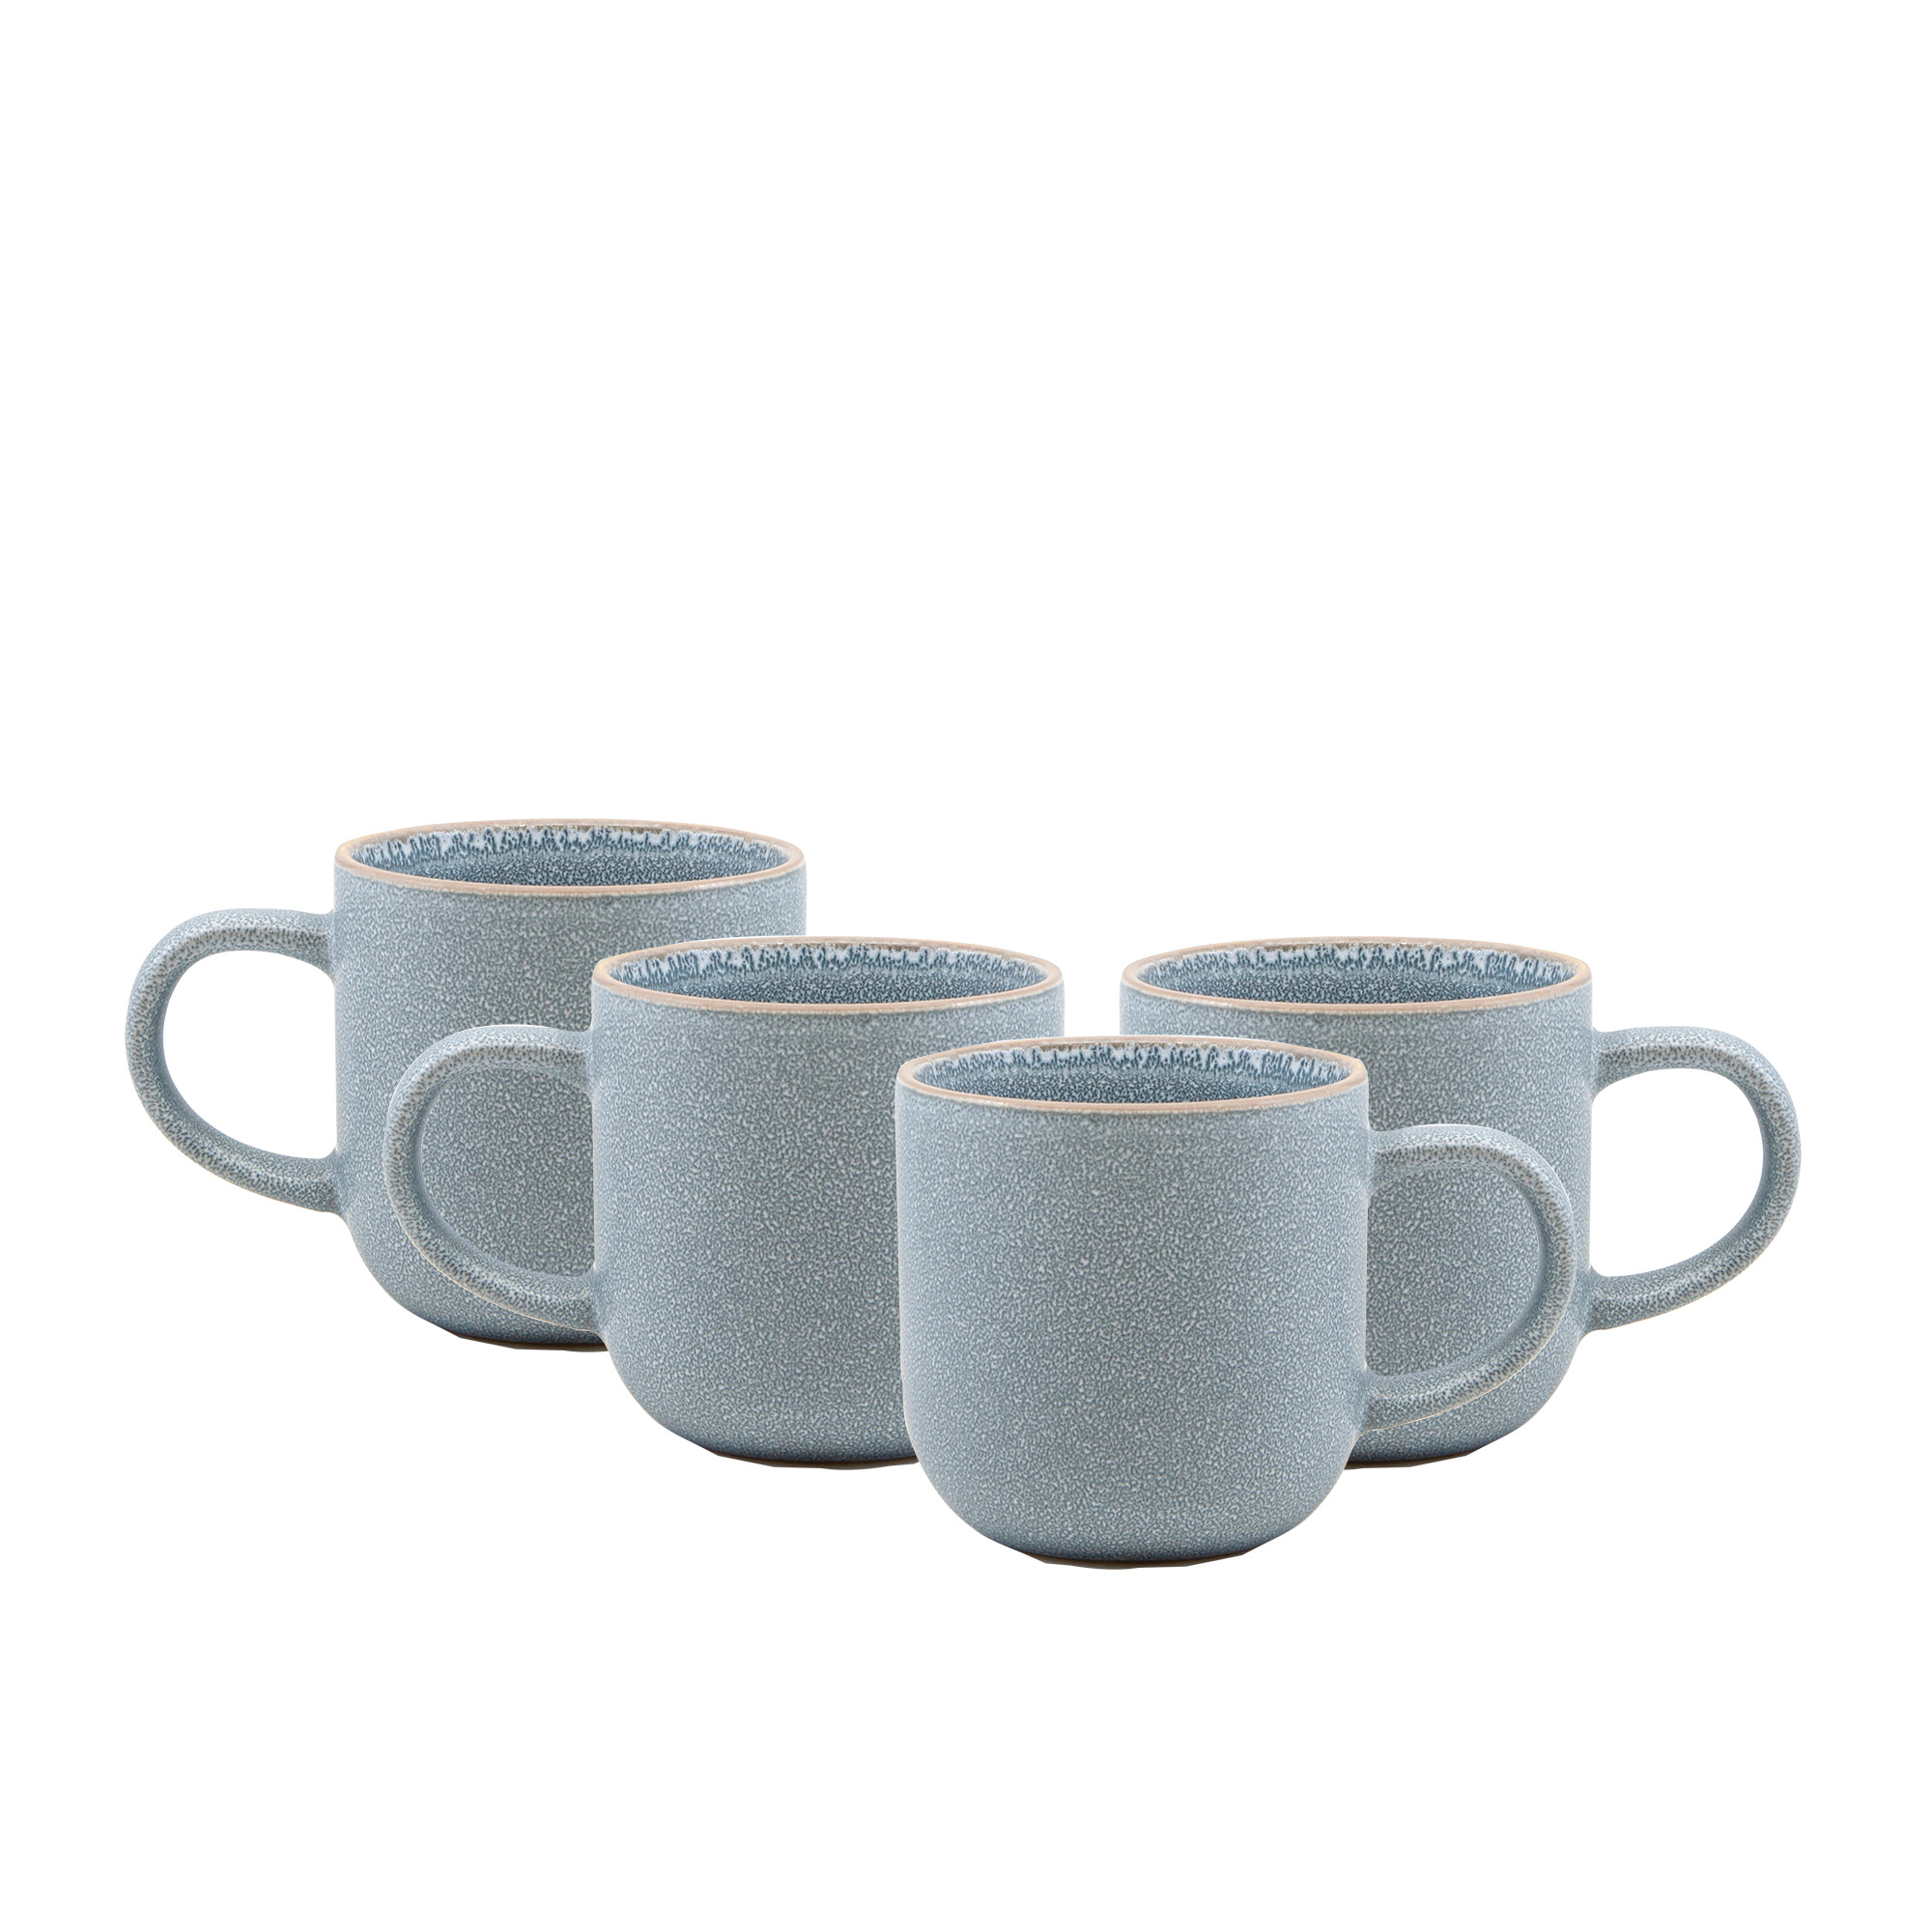 Salt & Pepper Hana 4pc Mug Set 380ml Light Blue